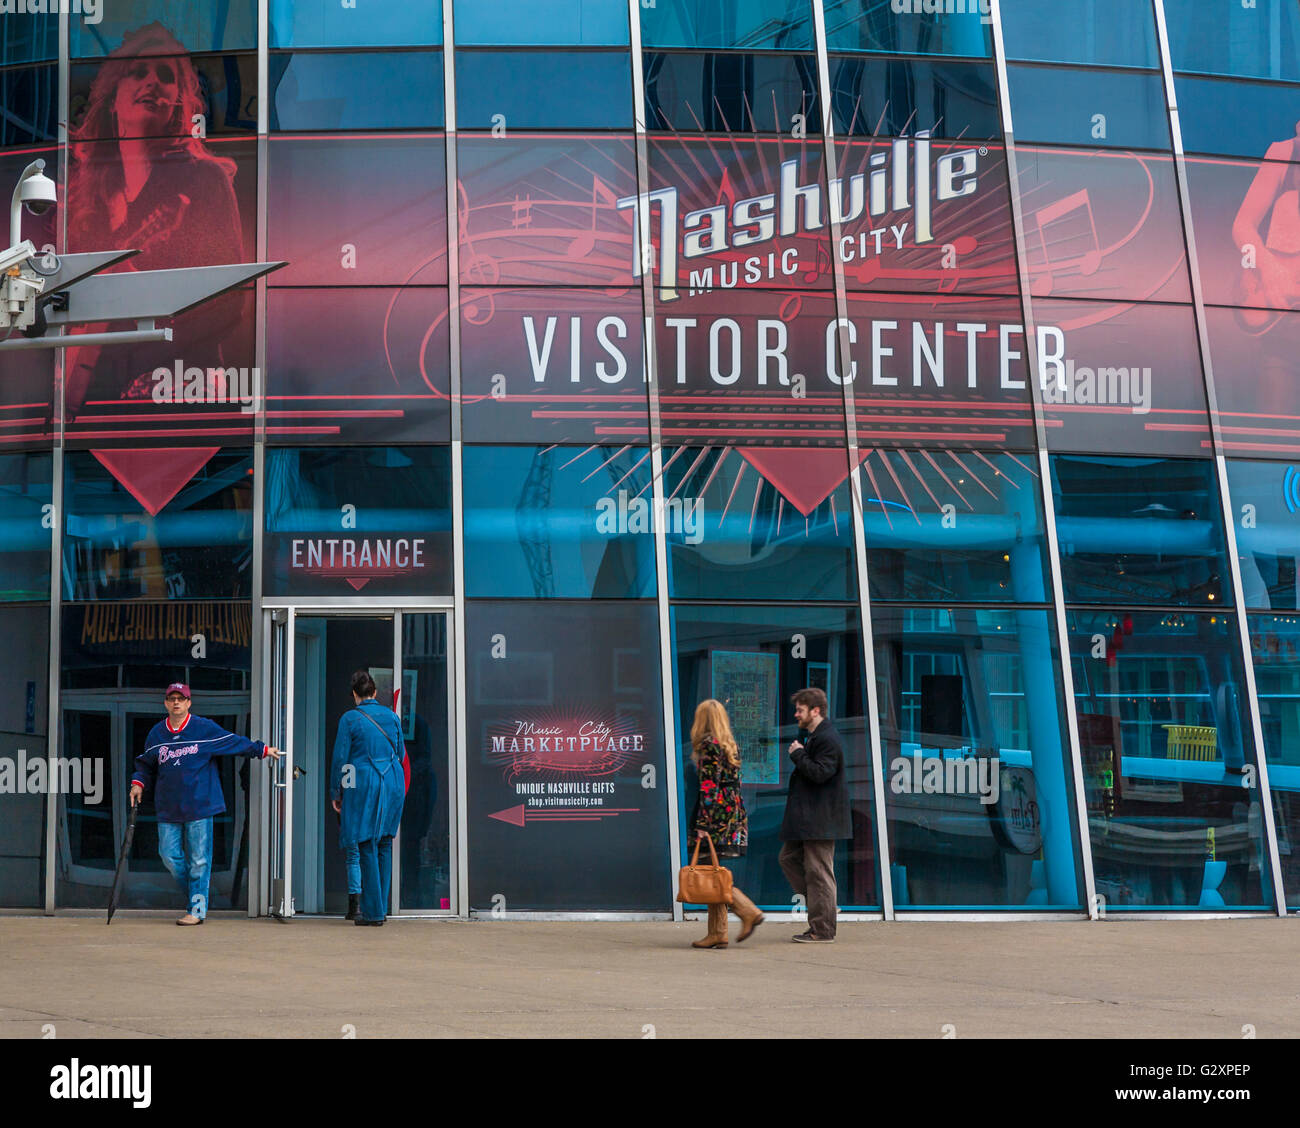 Music City Marketplace at the Visitor Center in downtown Nashville, Tennessee - Stock Image